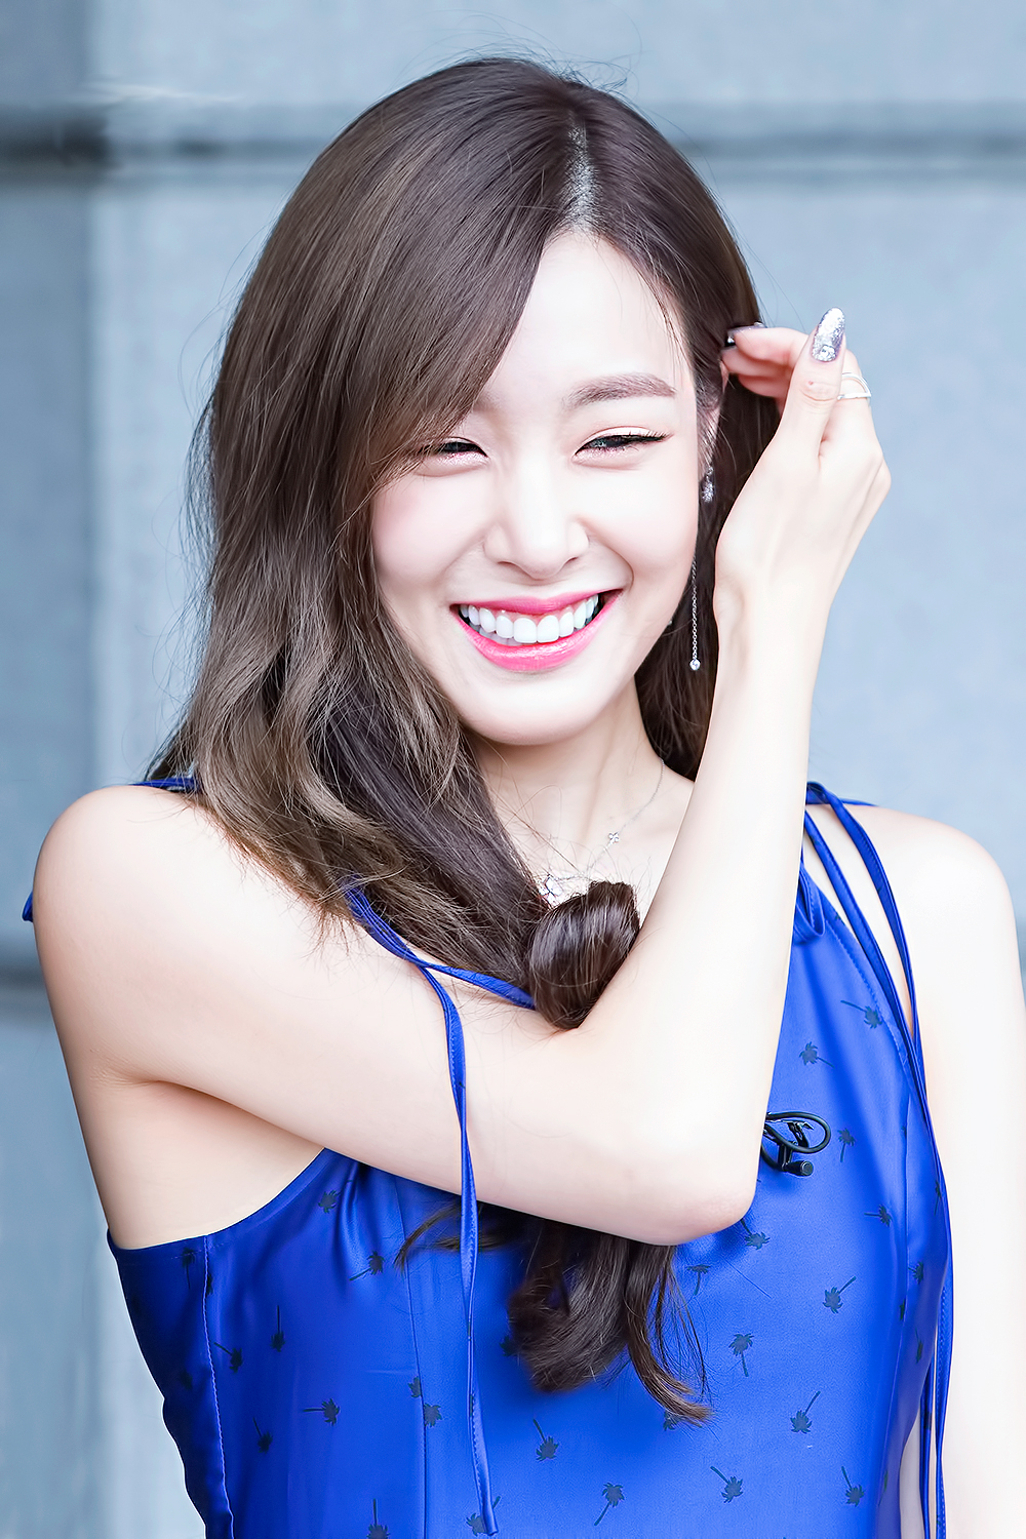 Tiffany smiling and brushing her hair